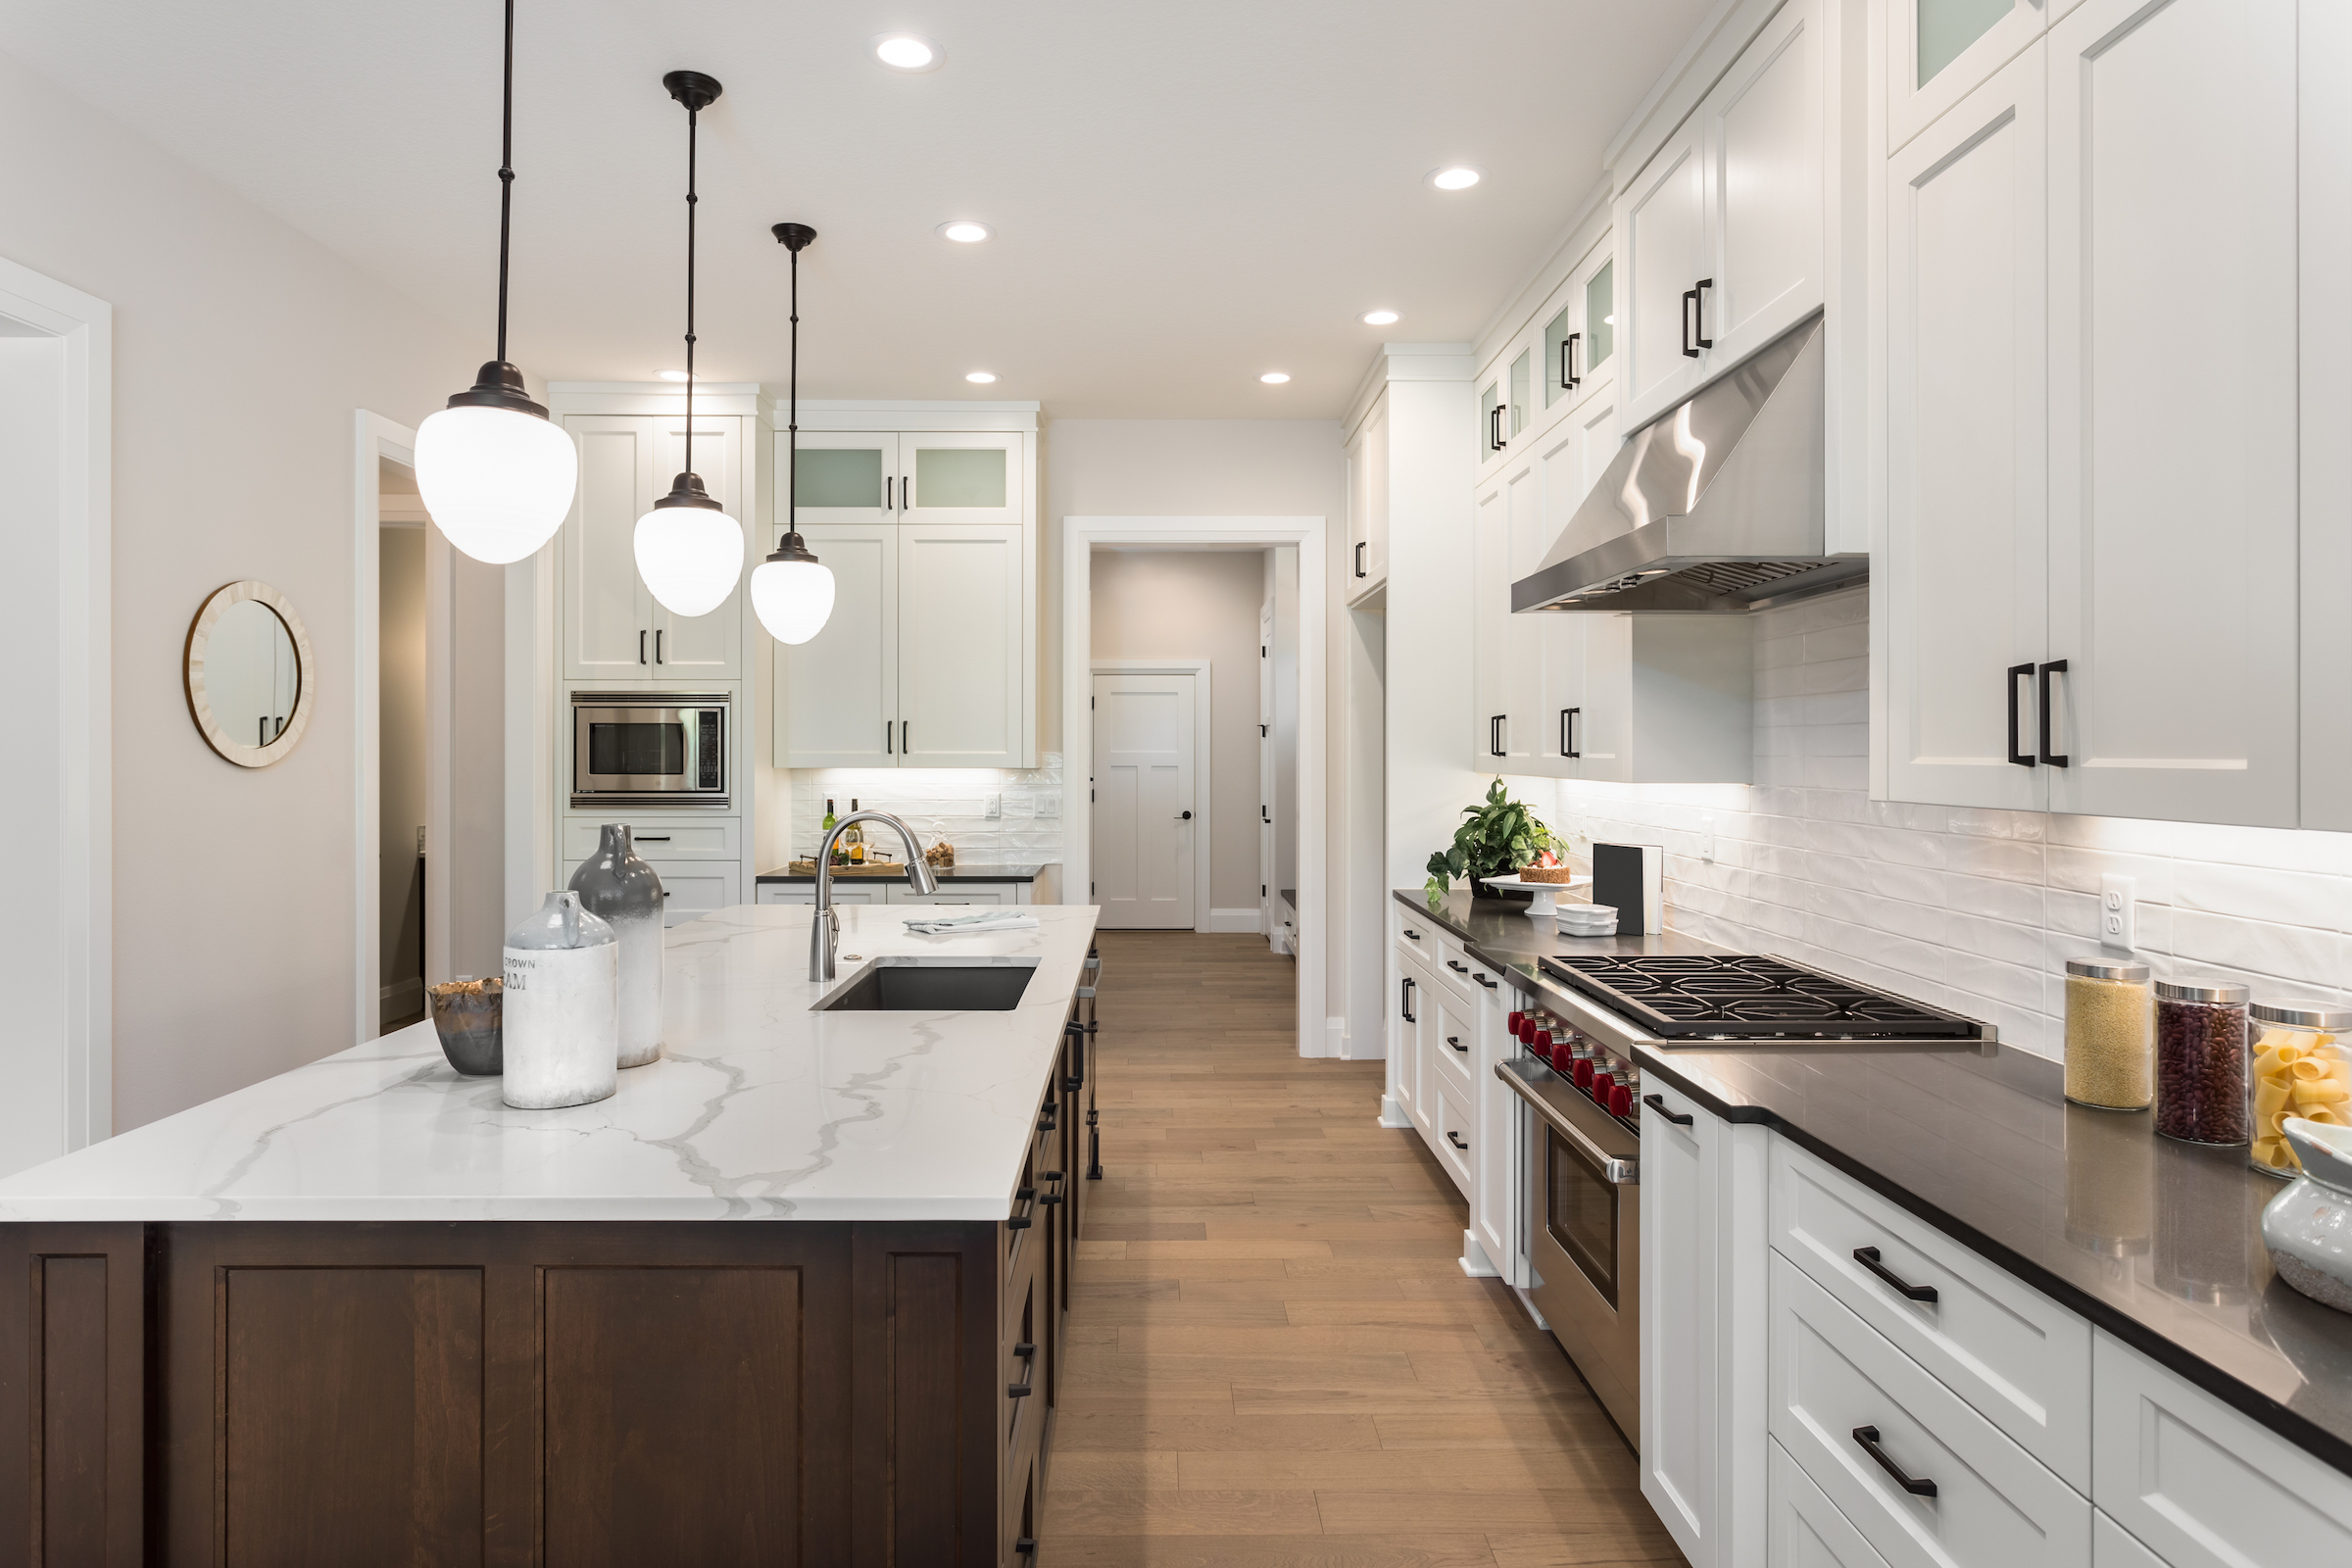 How to install pendant lighting over a kitchen island.